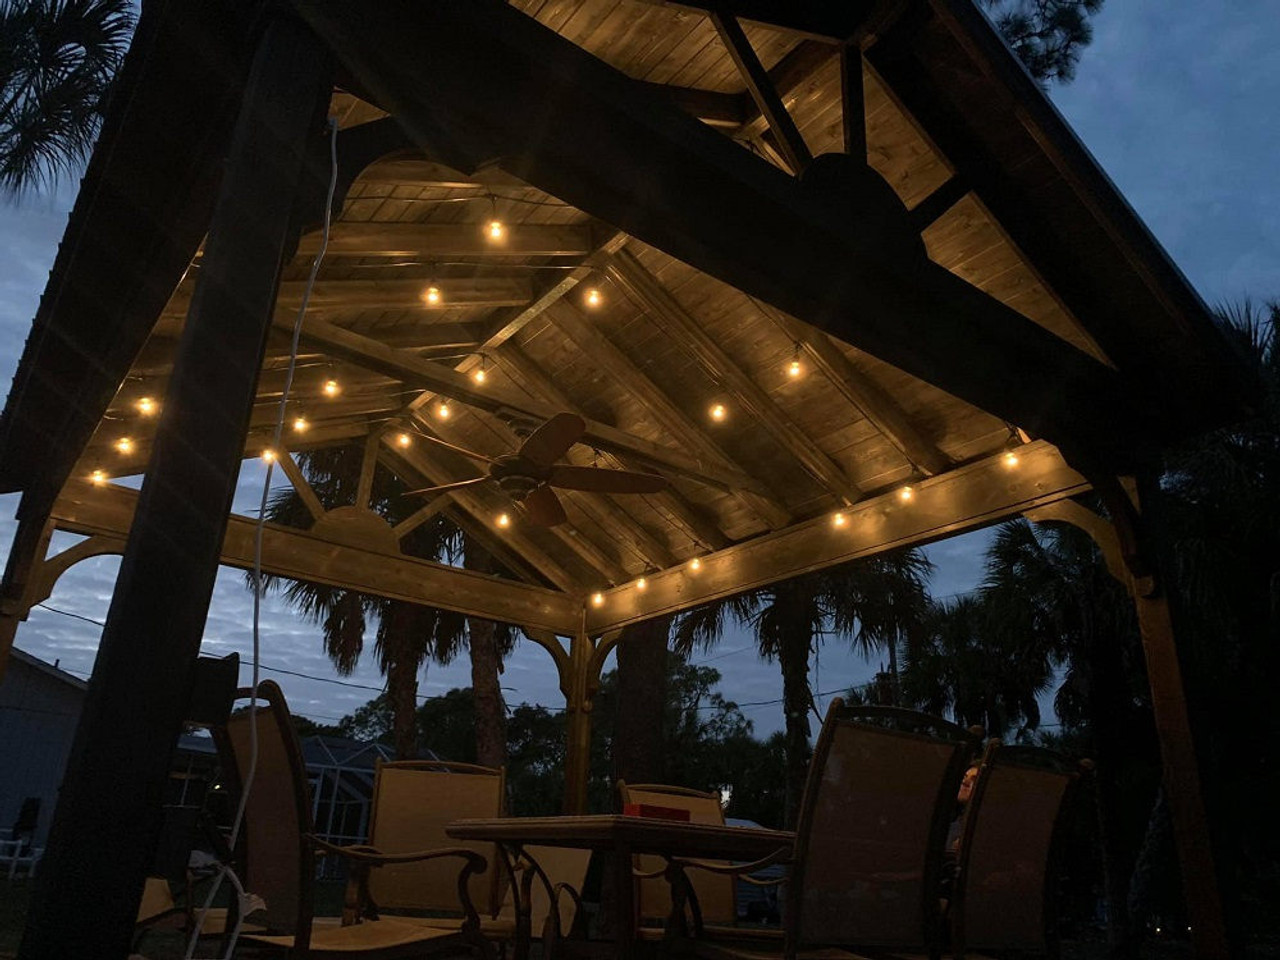 Cedar Gable Pavilion Kit 13x15 Port Charlotte FL night time idea